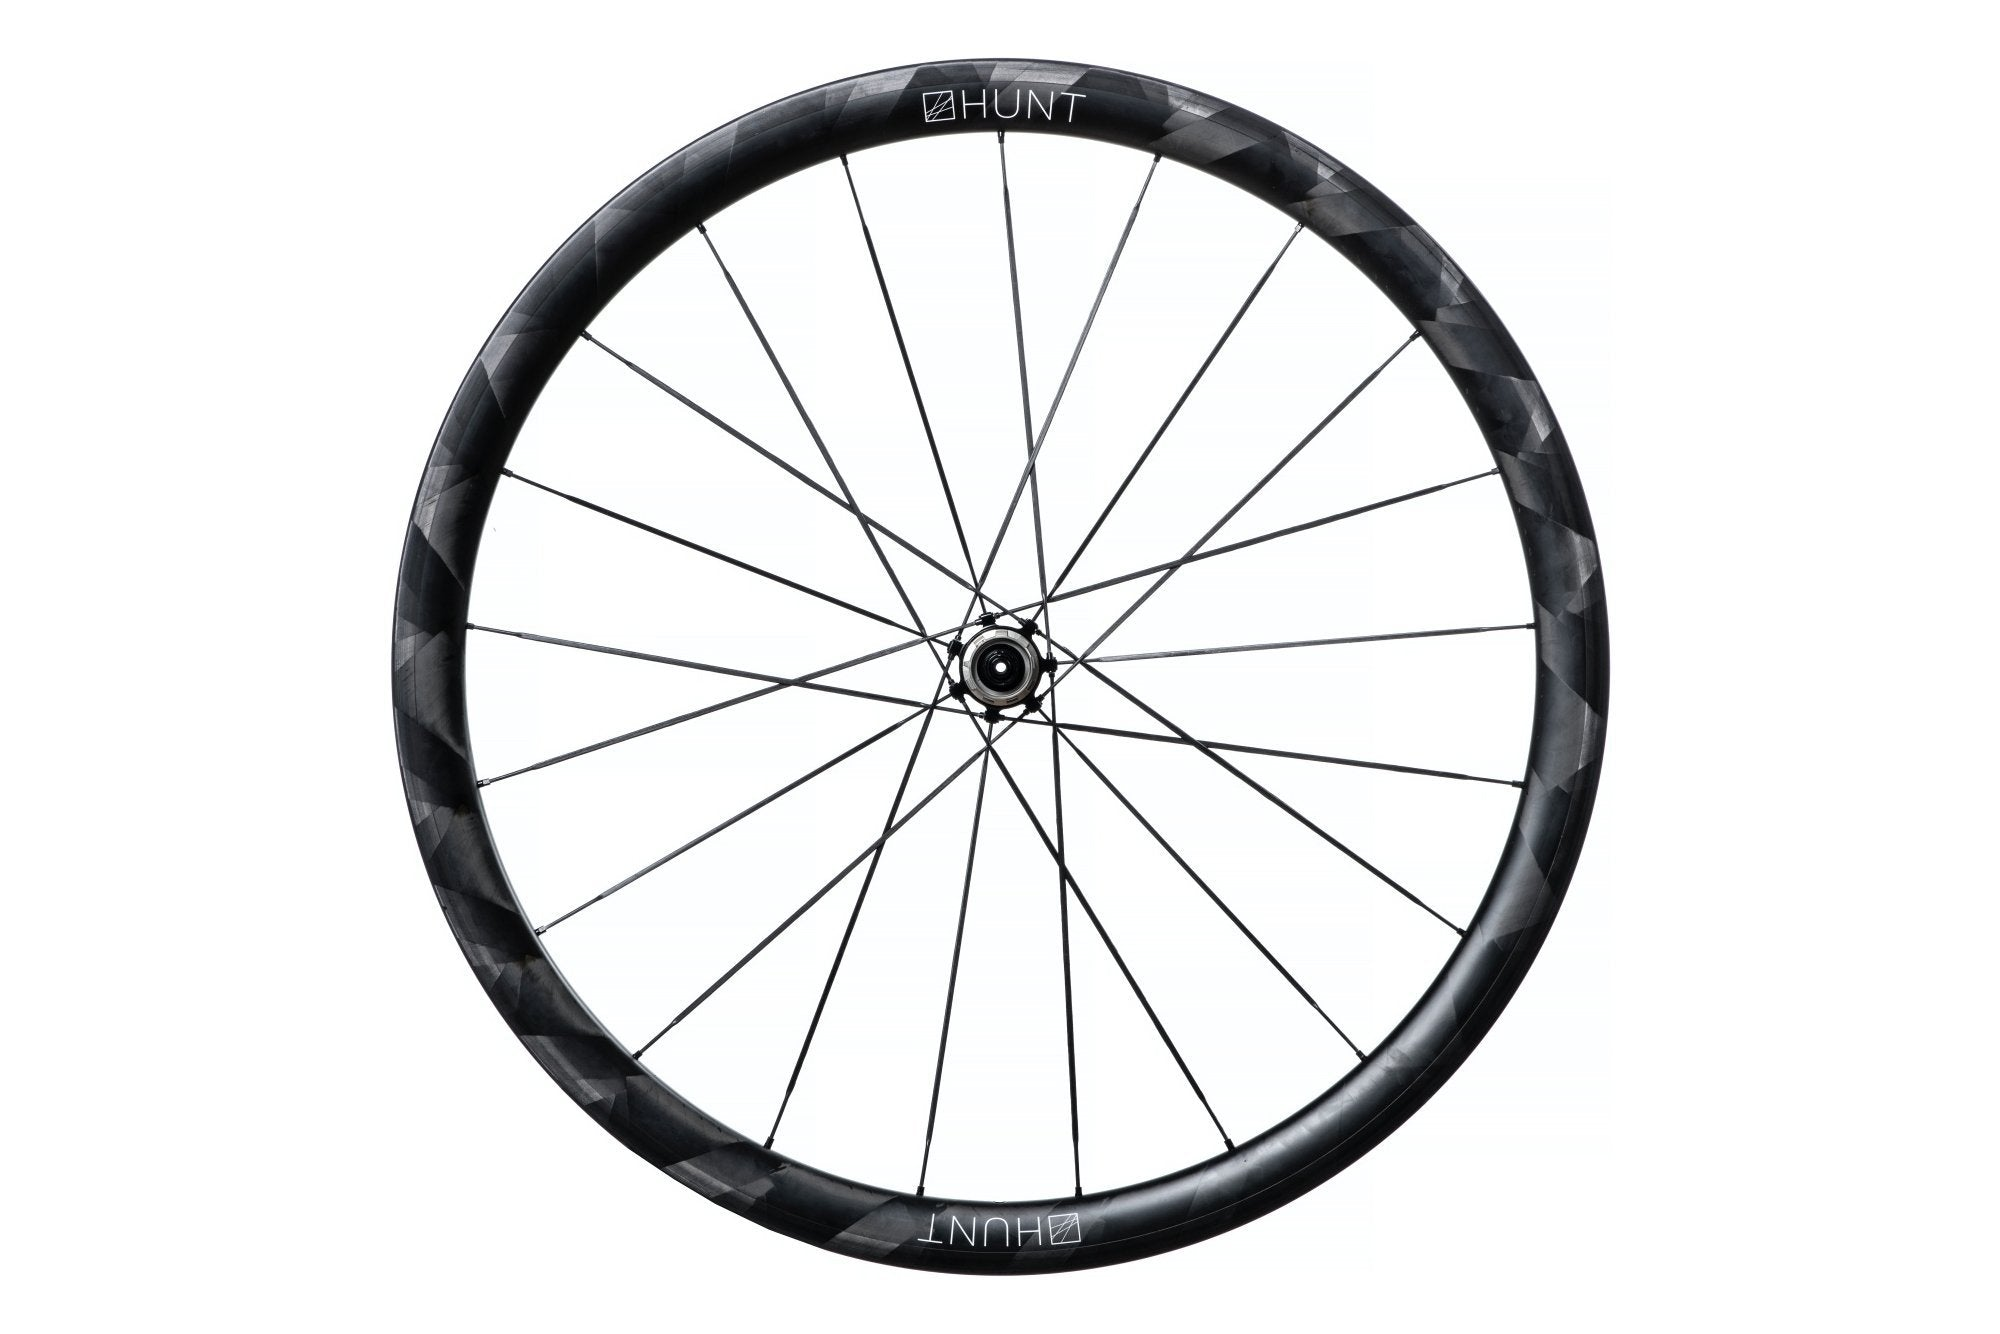 <h1>Rim Surface</h1><i>High TG resin provides extremely reliable braking and durability for longer descents. We lab test all our rims to very high braking temp (200 C) to push their limits. The high temp resins used for our Griptec Braking surfaces and rims are designed and perform to extremely high levels of braking heat build-up. We also ride test our rim brake wheels in the Alps to ensure the wheels are put through their paces on long, steep and fast descents.</i>